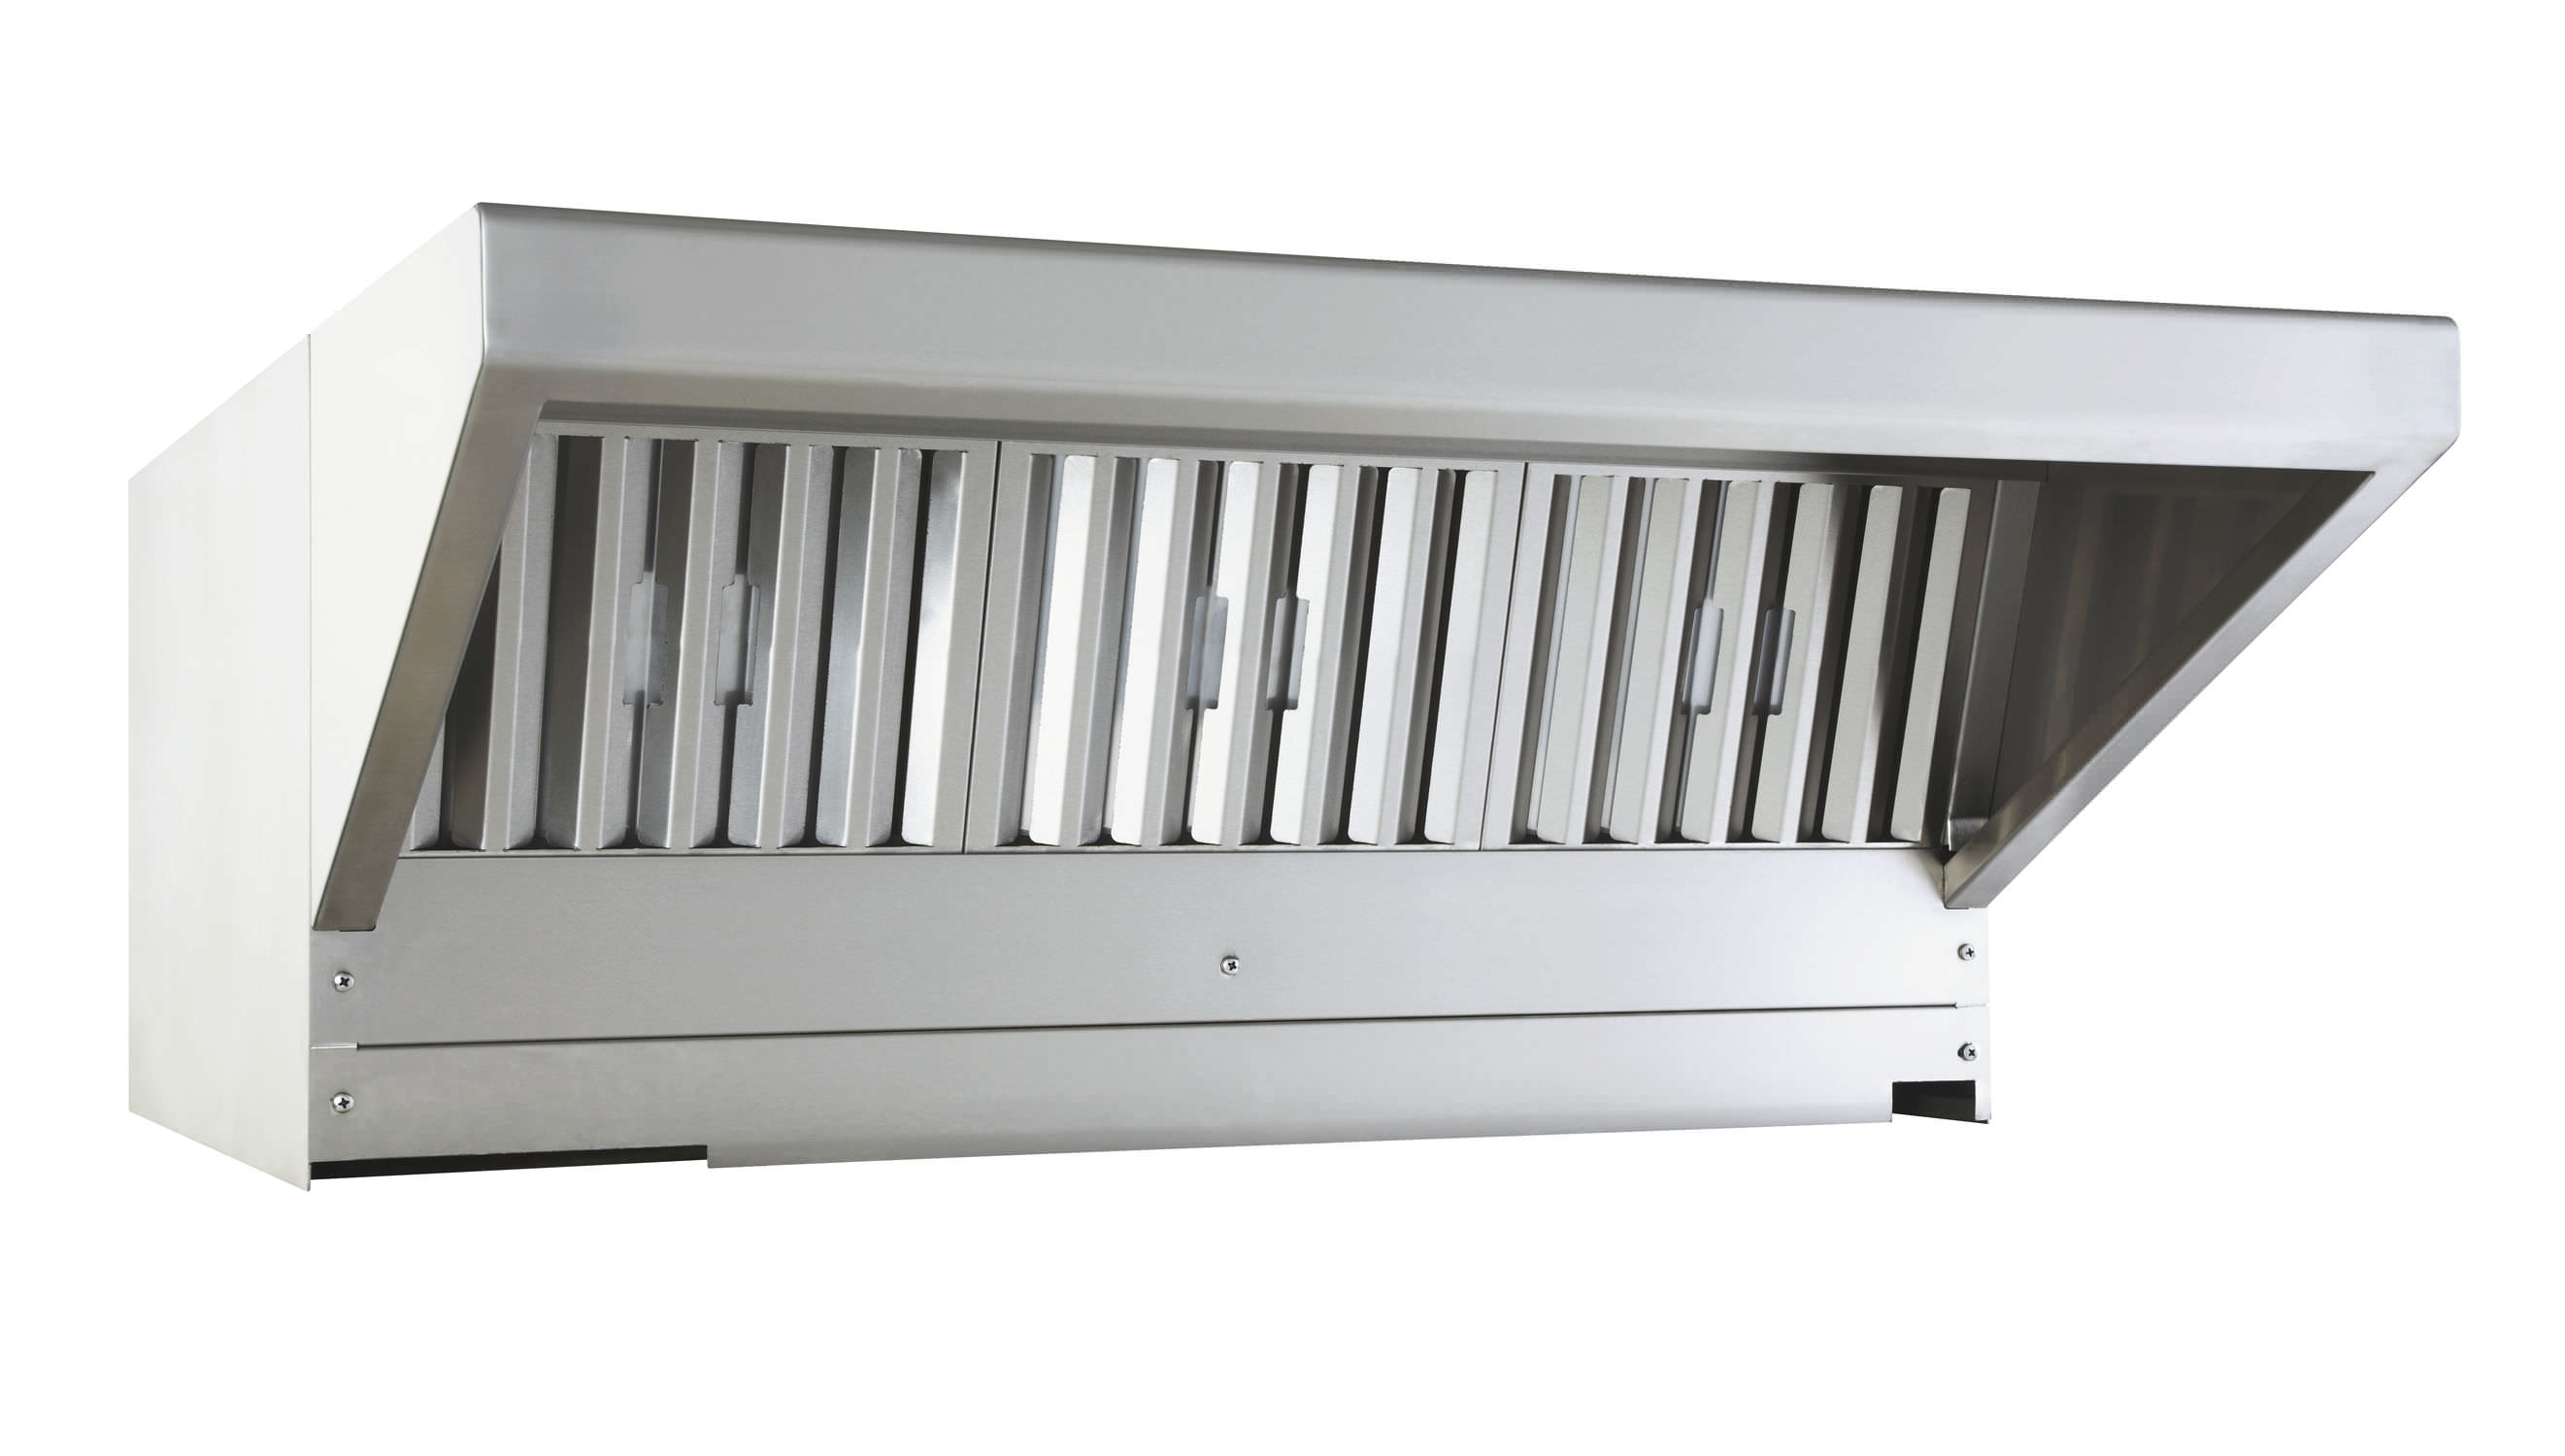 Commercial And Domestic Kitchen Chimney Manufacturer In Rajkot Gujarat Id 2104384